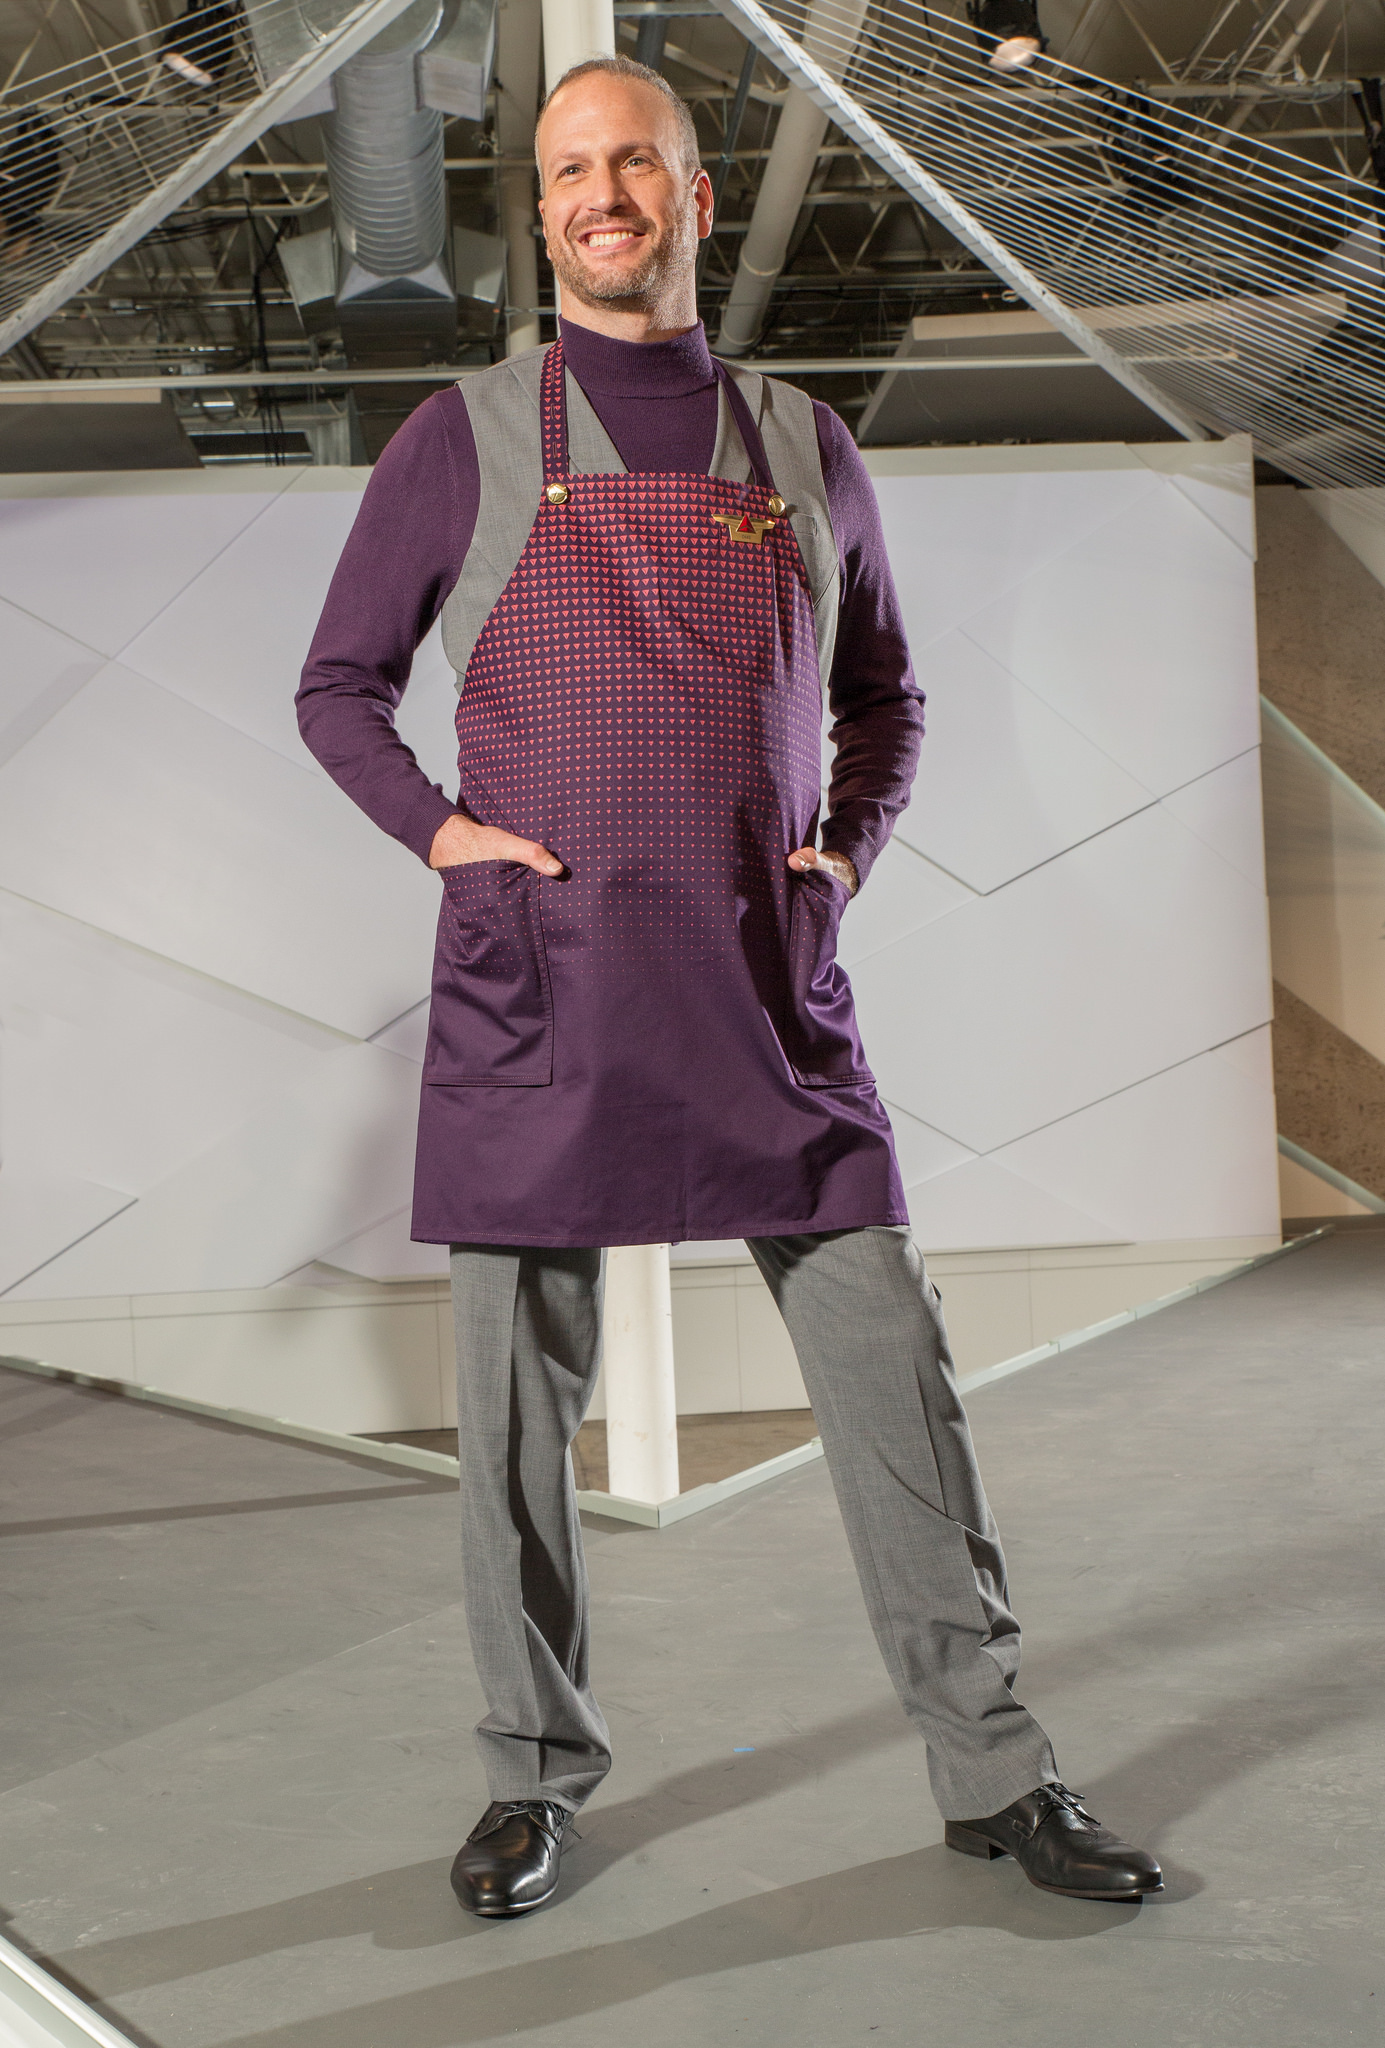 An apron for in-flight meal service